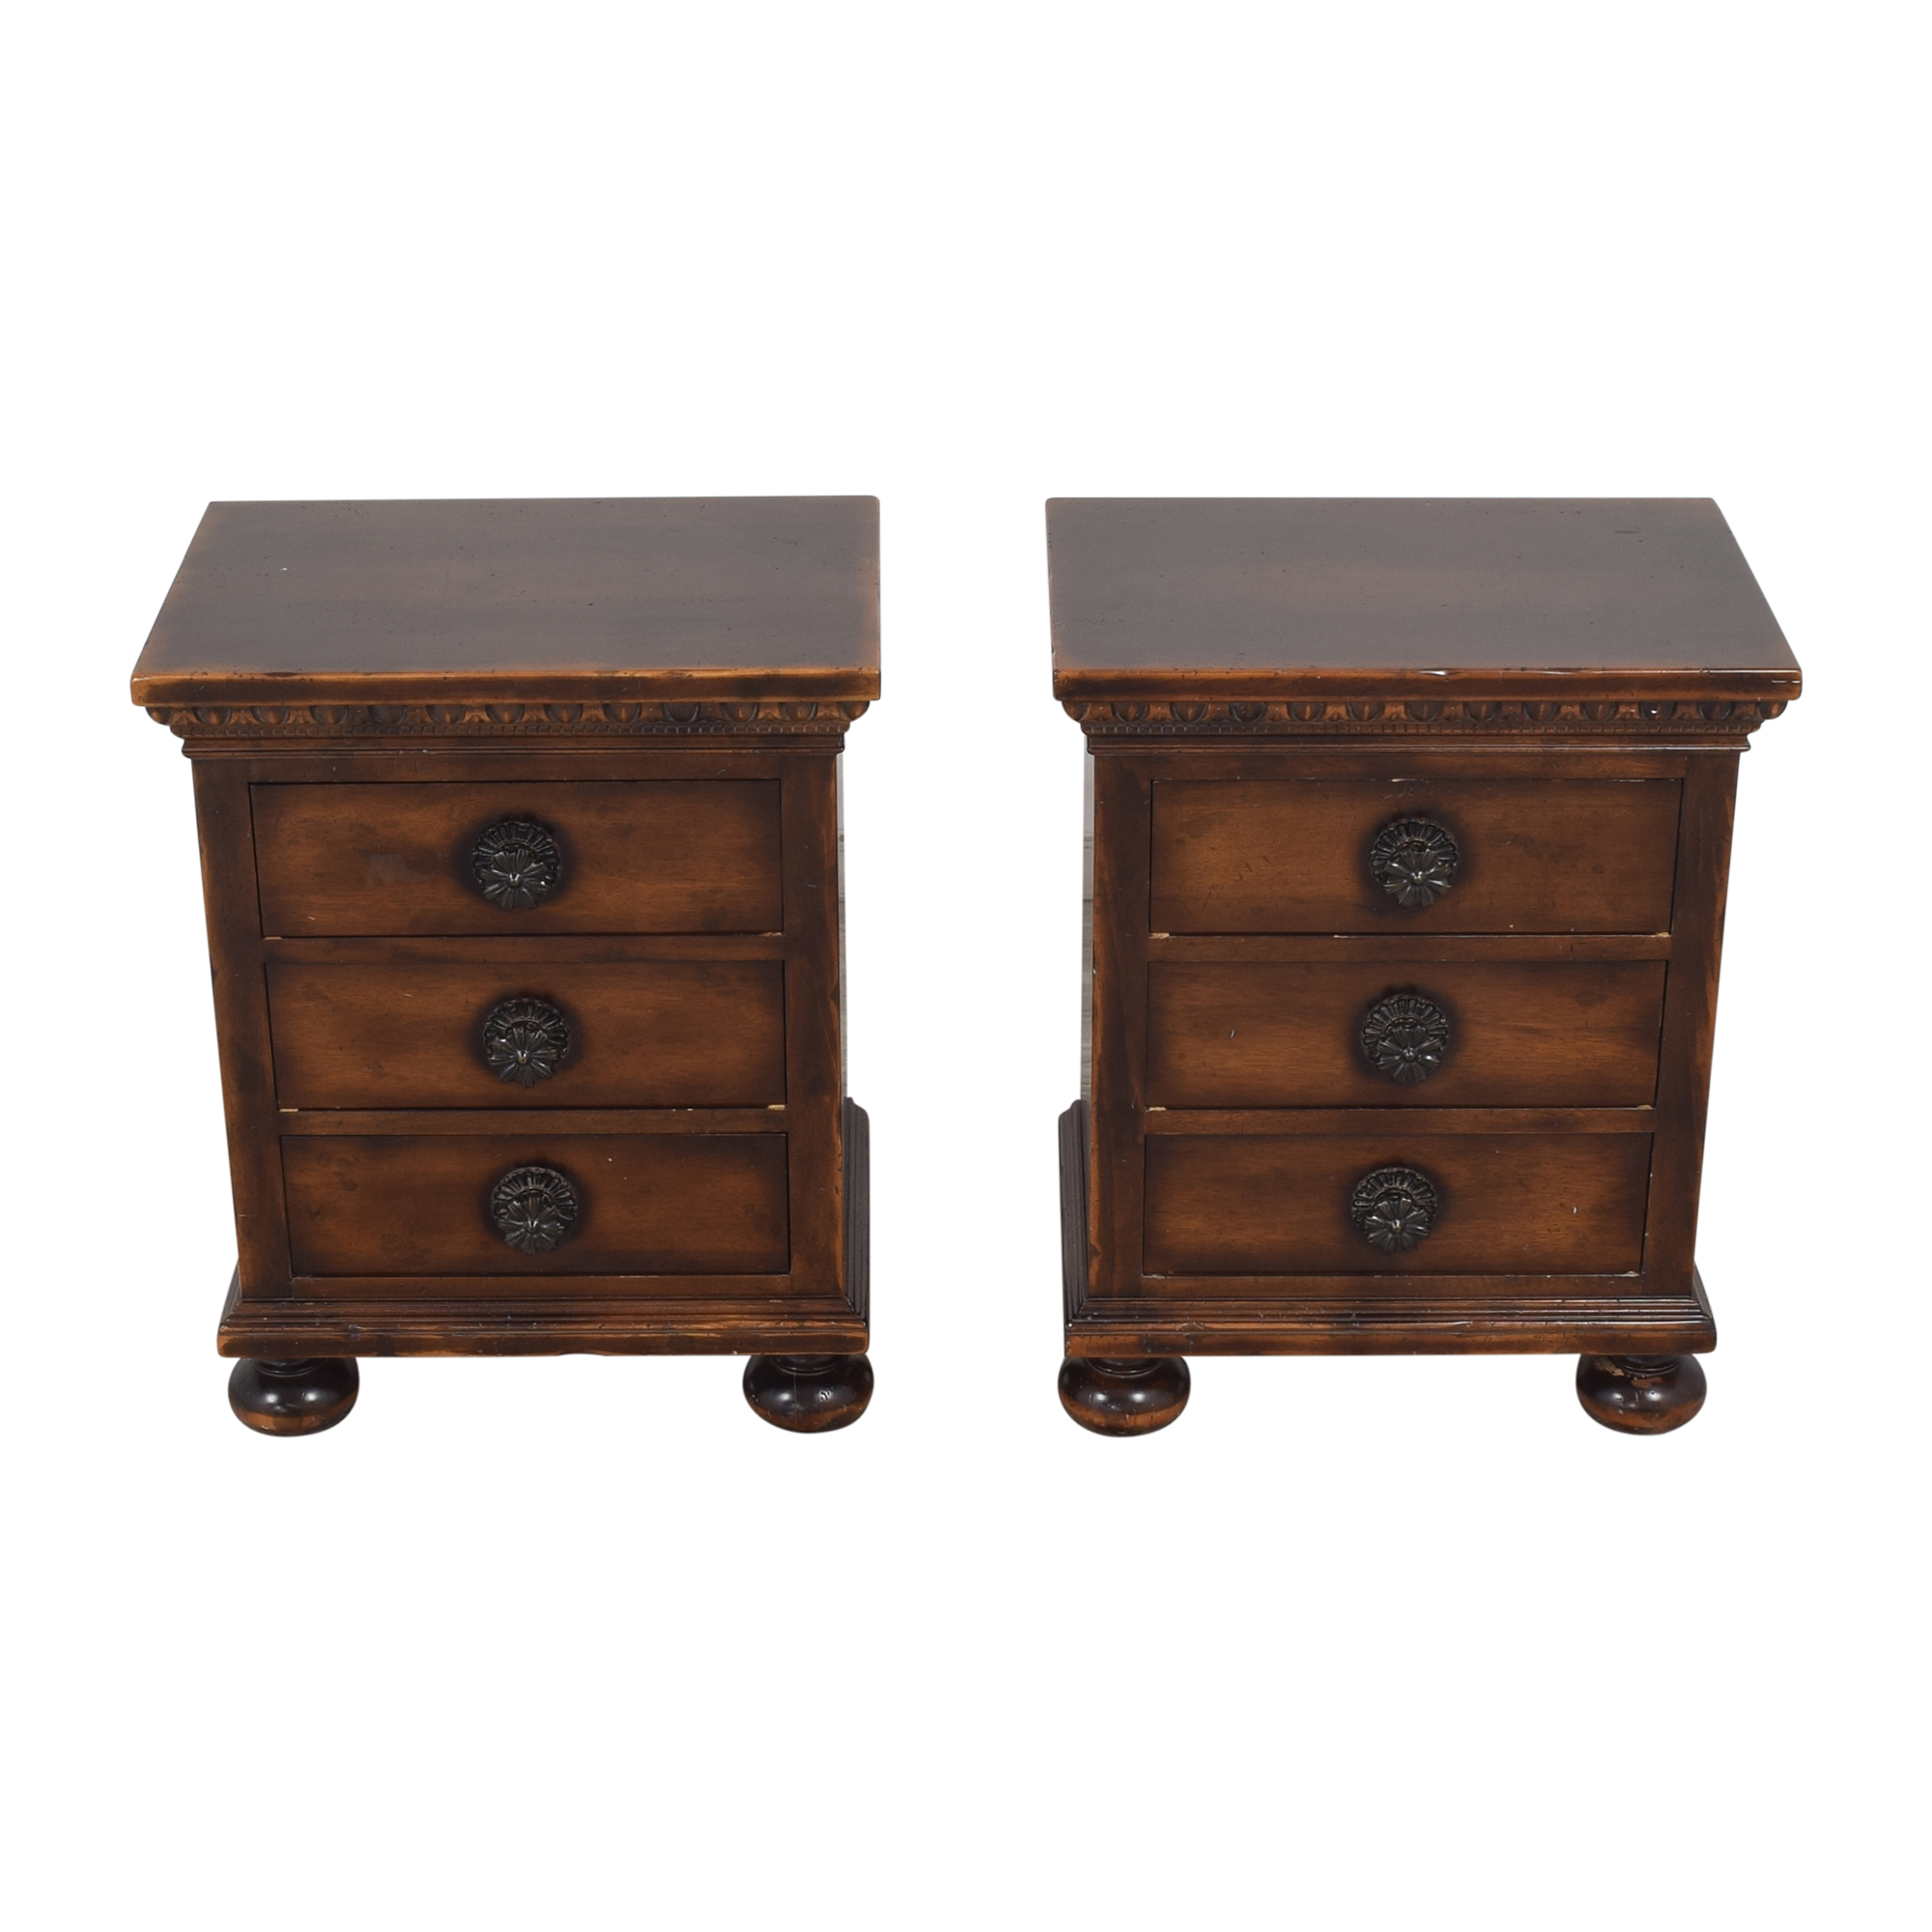 ABC Carpet & Home Three Drawer Nightstands / End Tables